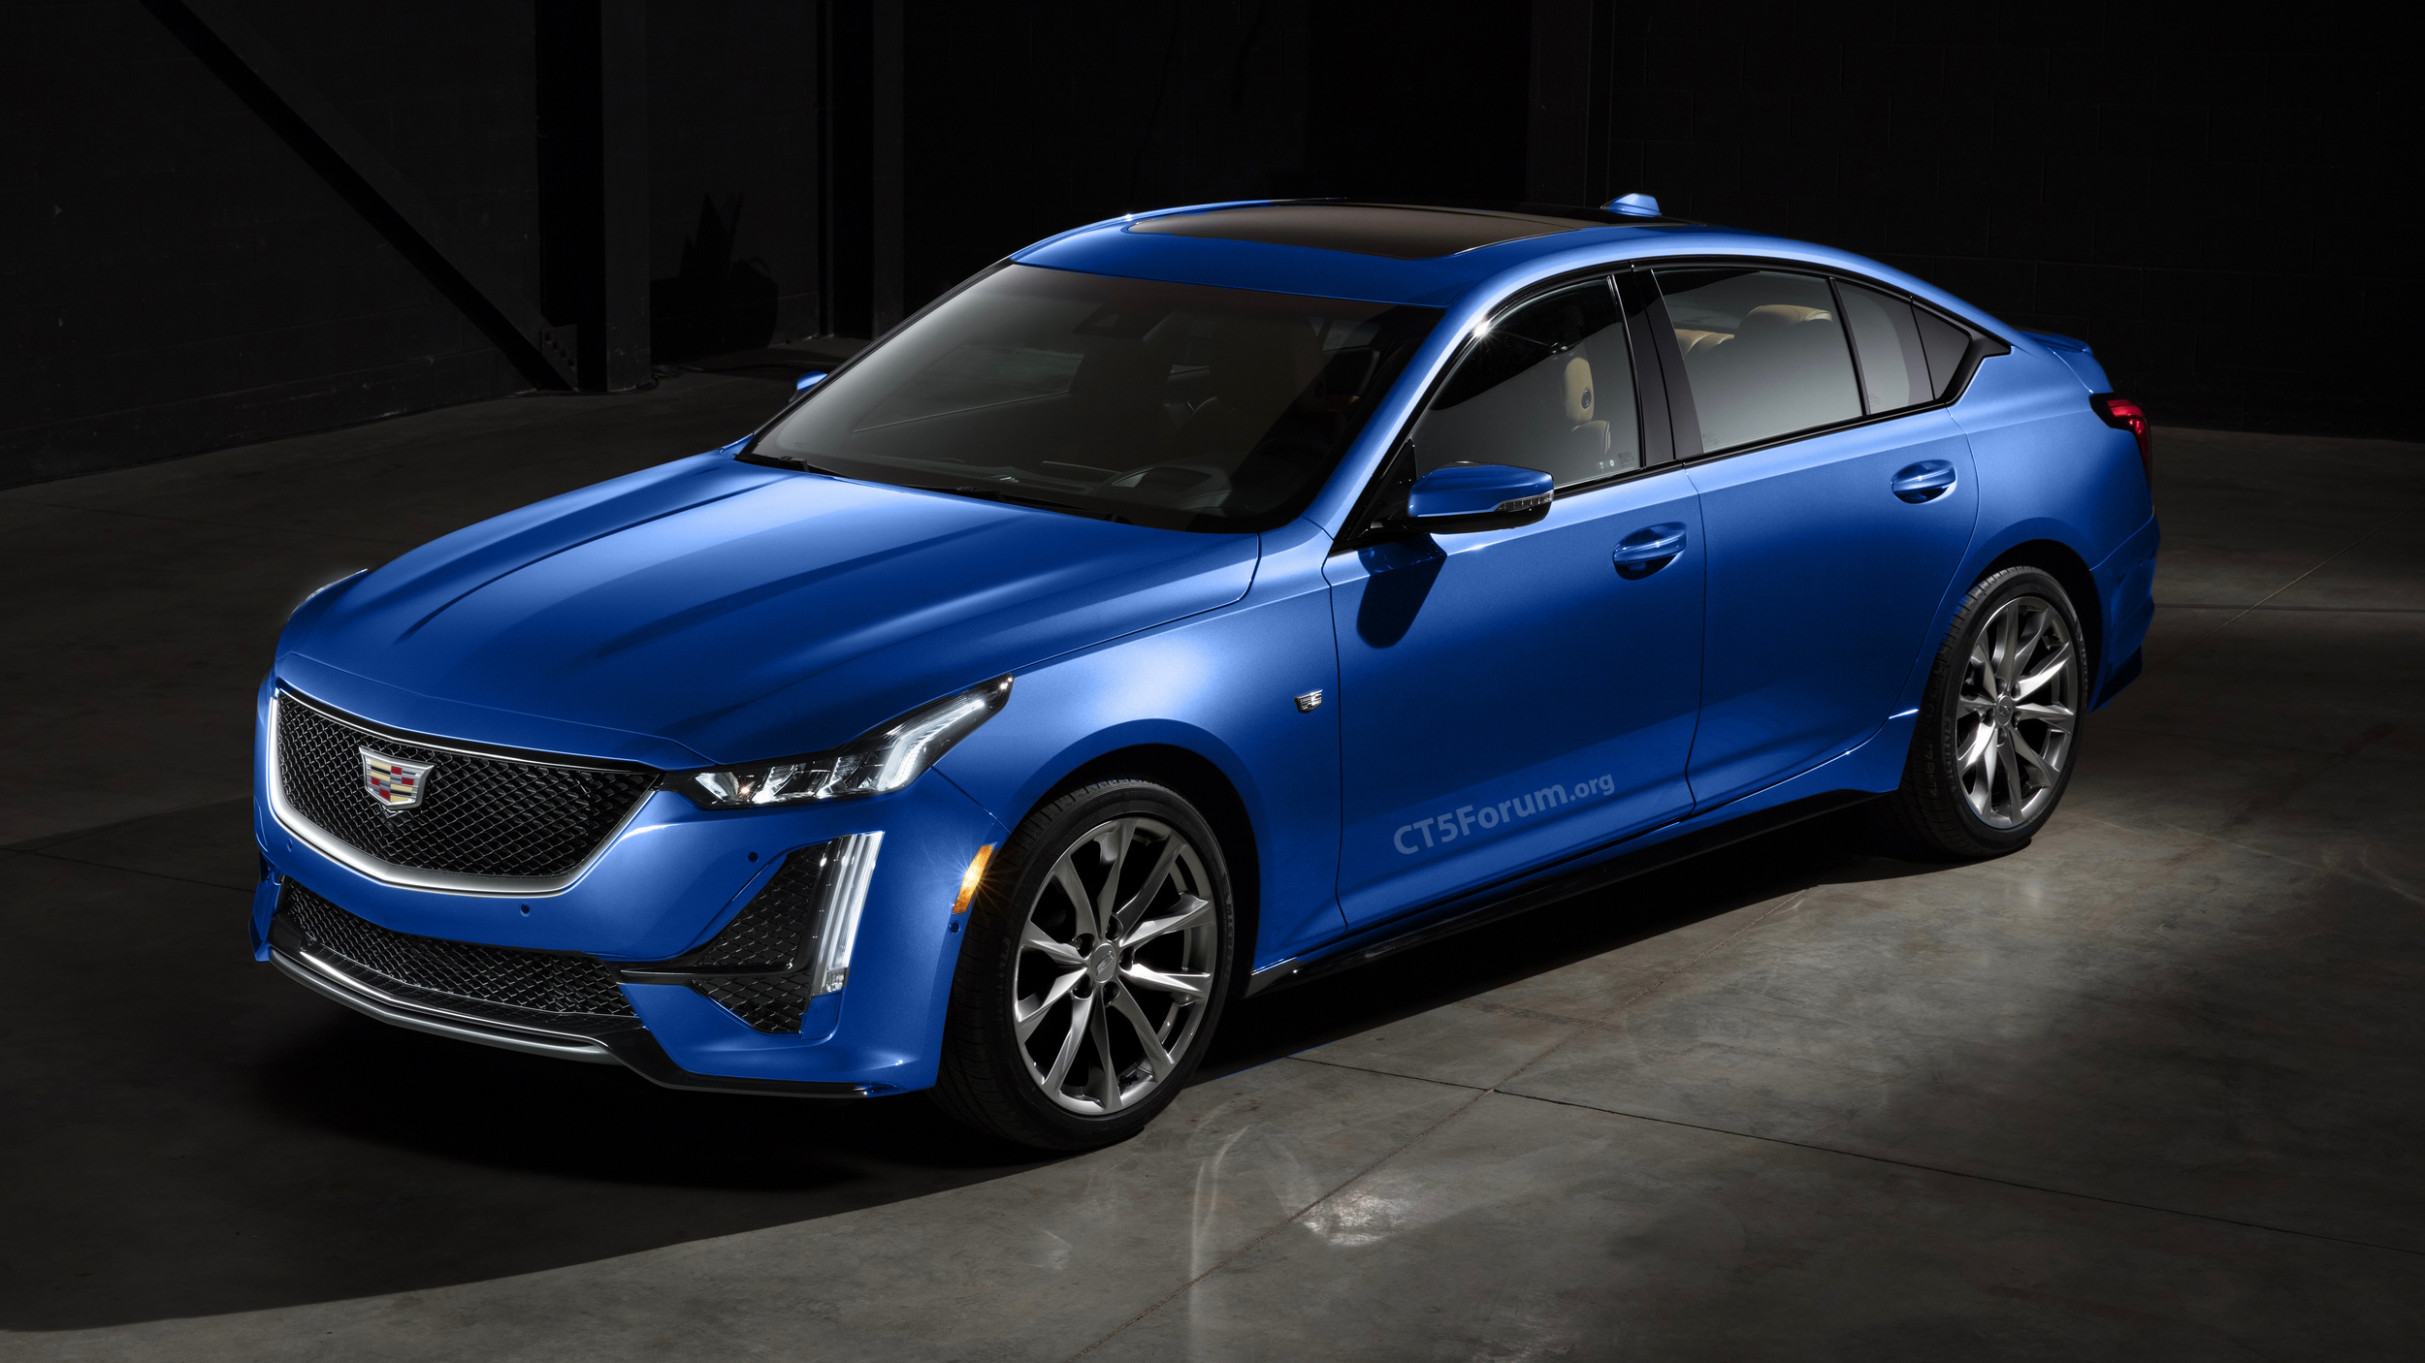 7 Cadillac CT7 Rendered In New Colors | GM Authority - 2020 cadillac blue